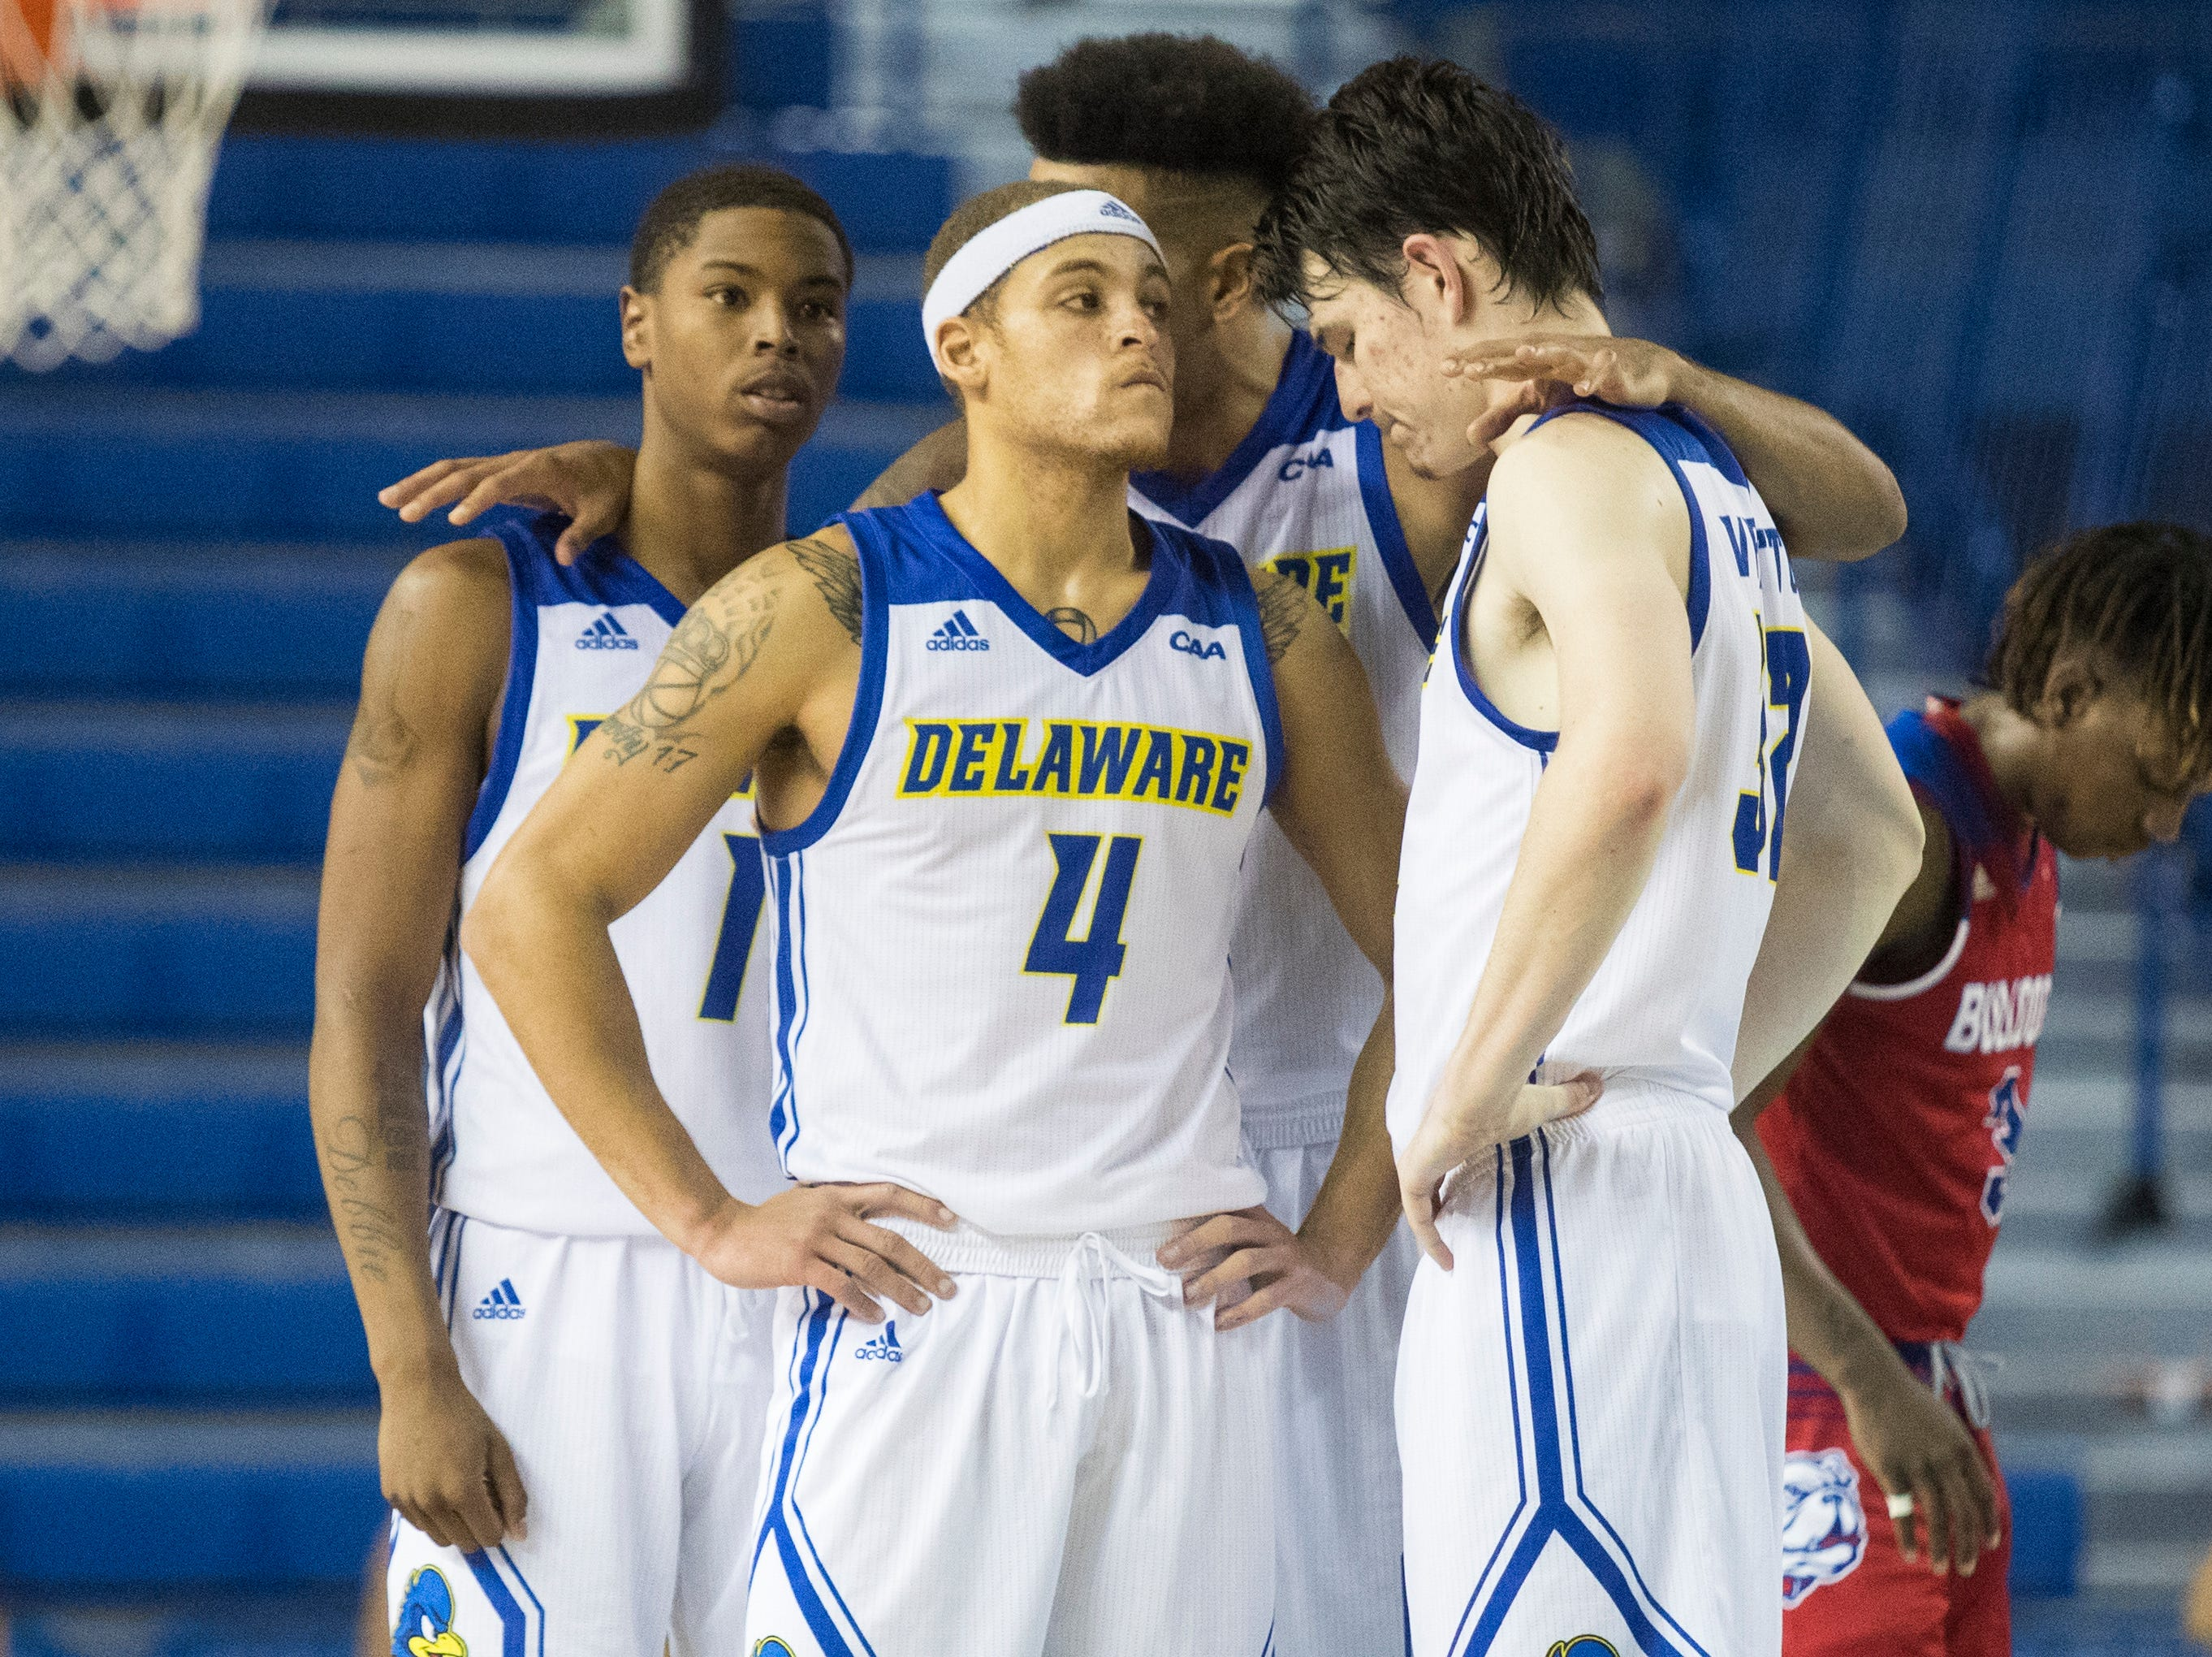 Delaware's Eric Carter (5) speaks with teammates Kevin Anderson (1), Darian Bryant (4), and Matt Veretto (32) Monday at the Bob Carpenter Center. Delaware defeated Louisiana Tech 75-71.